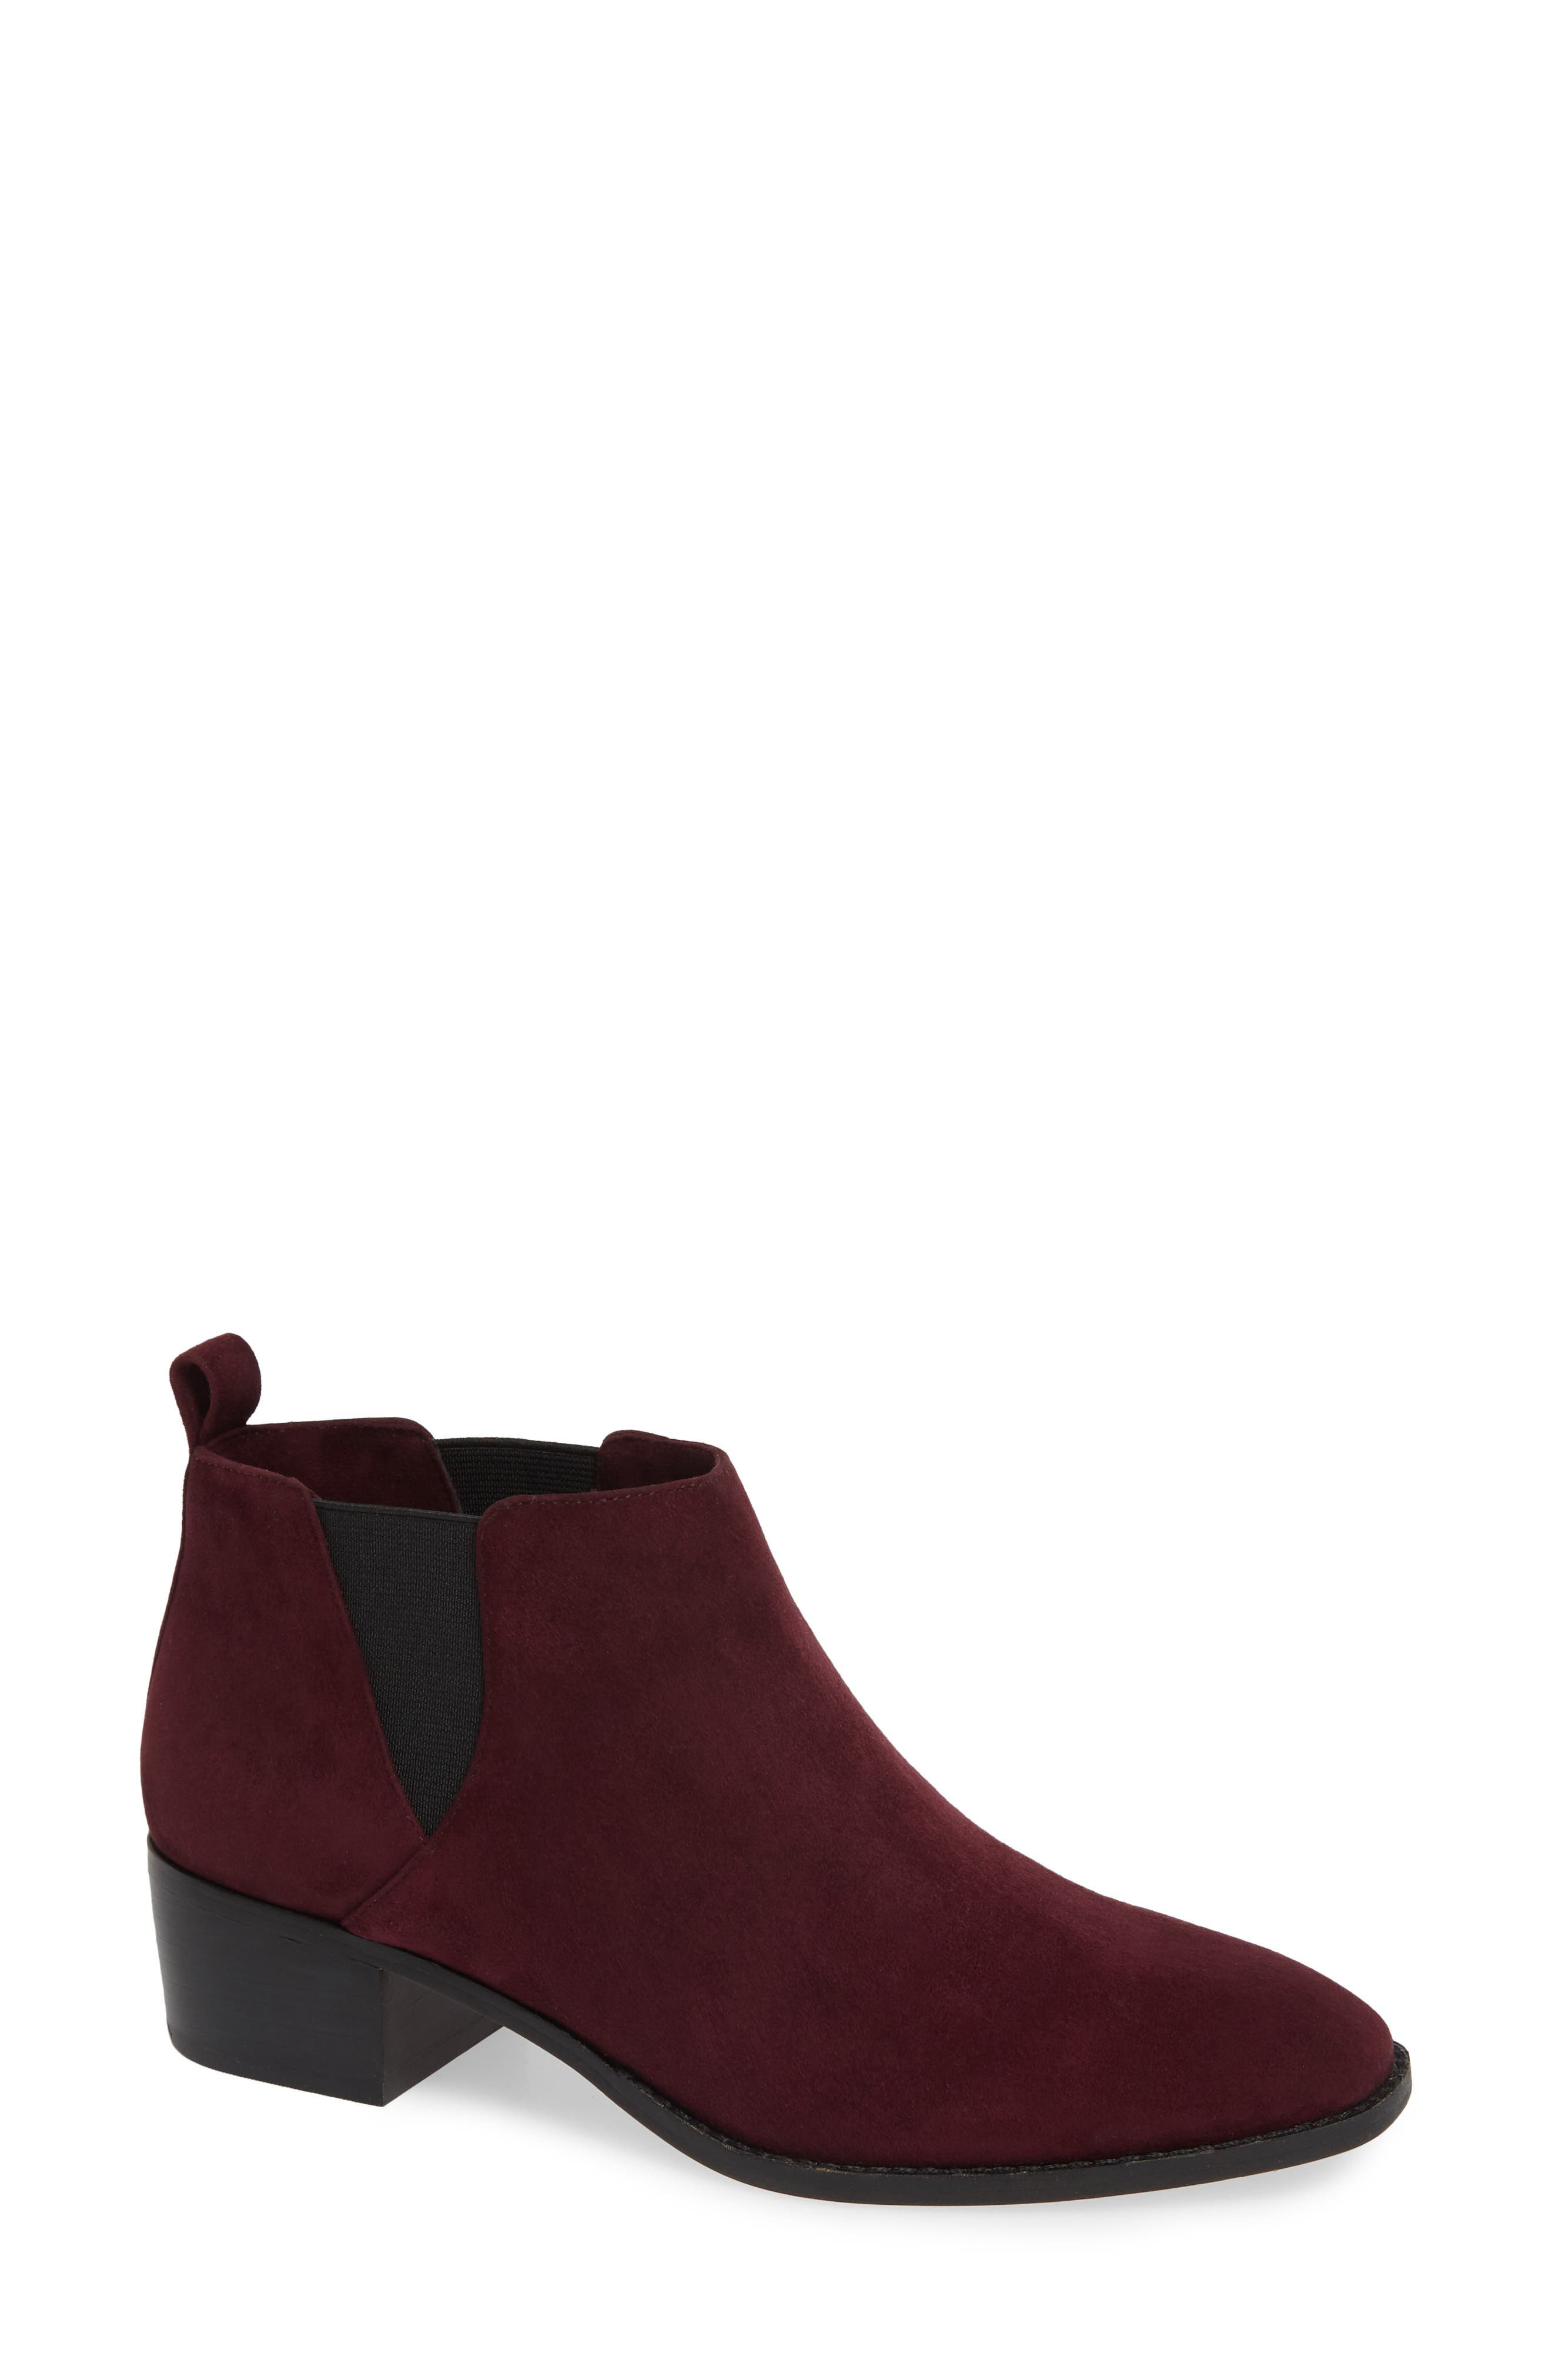 Jahlily Chelsea Bootie, Main, color, DARK PLUM SUEDE